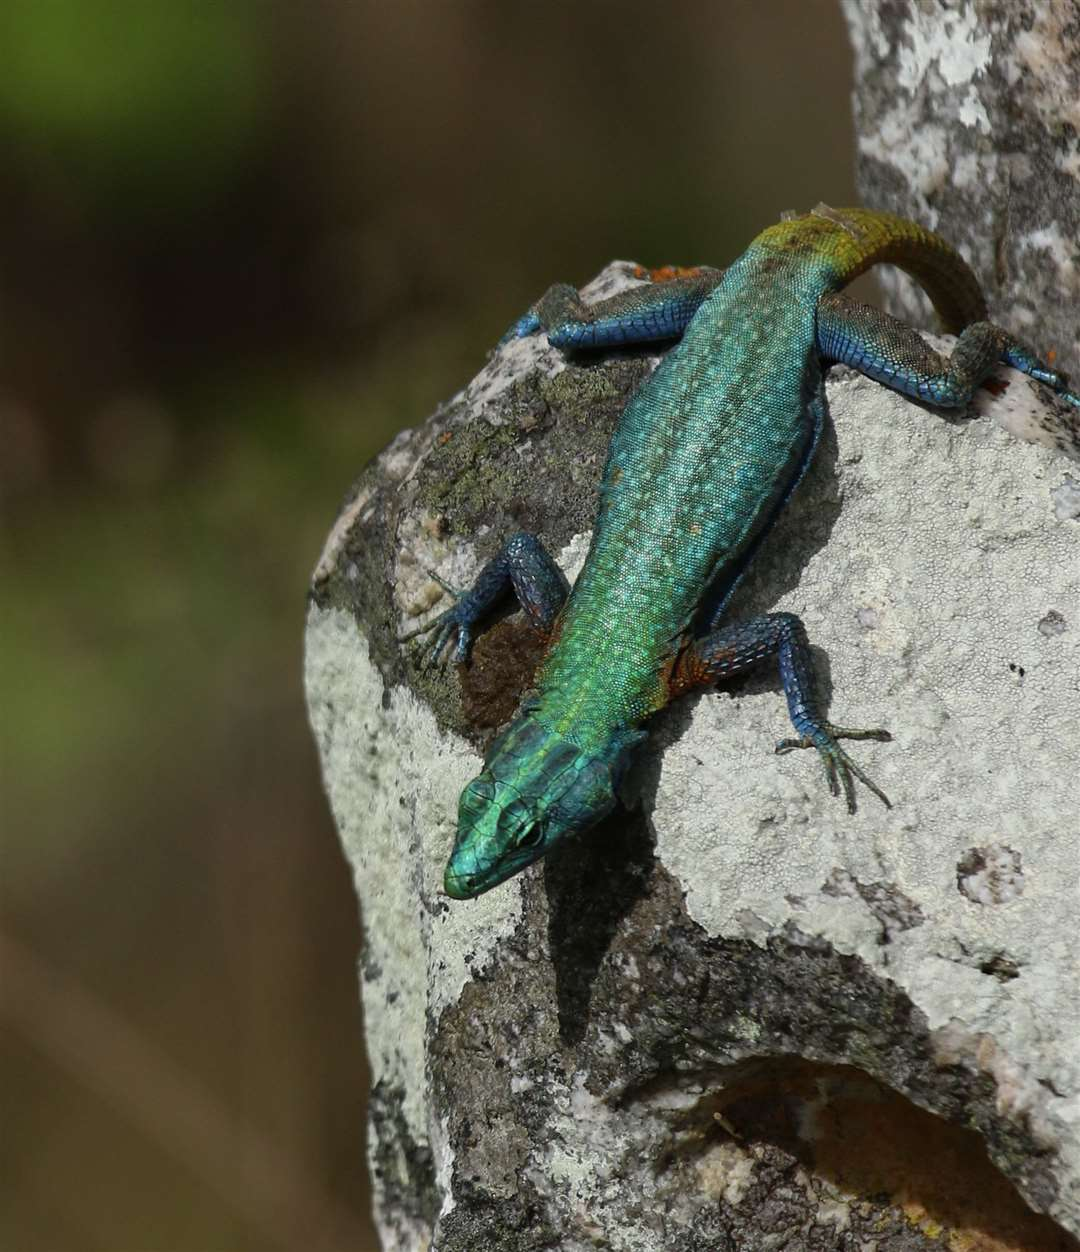 The flat lizard or 'platyvarus intermedius', also atChimanimani National Reserve. Picture: Millie Kerr for FFI-1